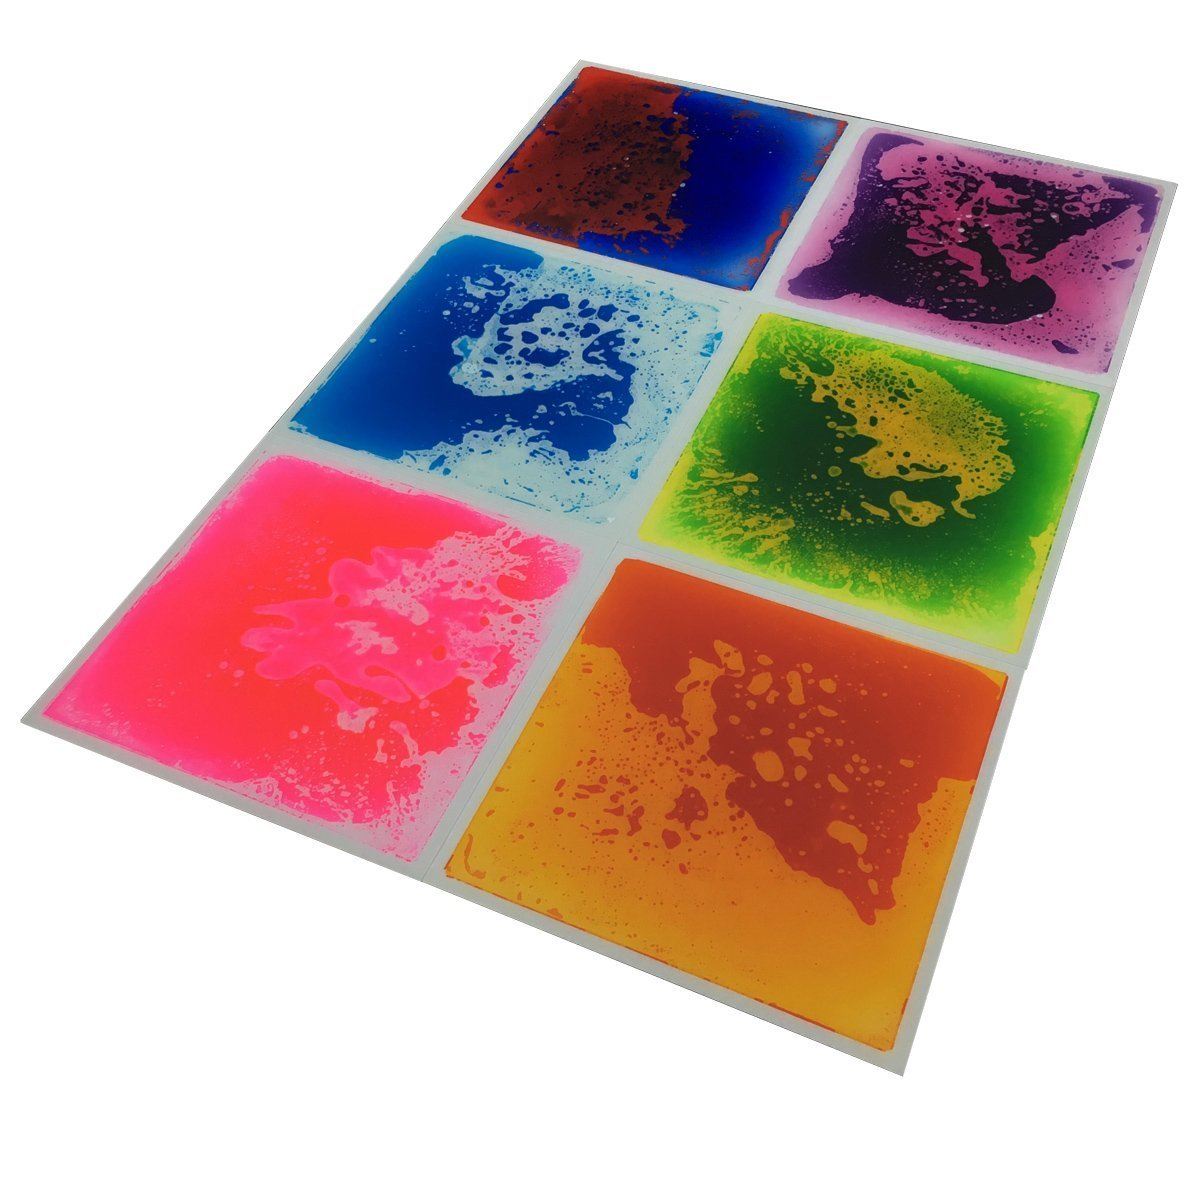 Art3d Multi Color Exercise Mat Liquid Encased Fancy Playmat Kids Safety Play Floor Tile